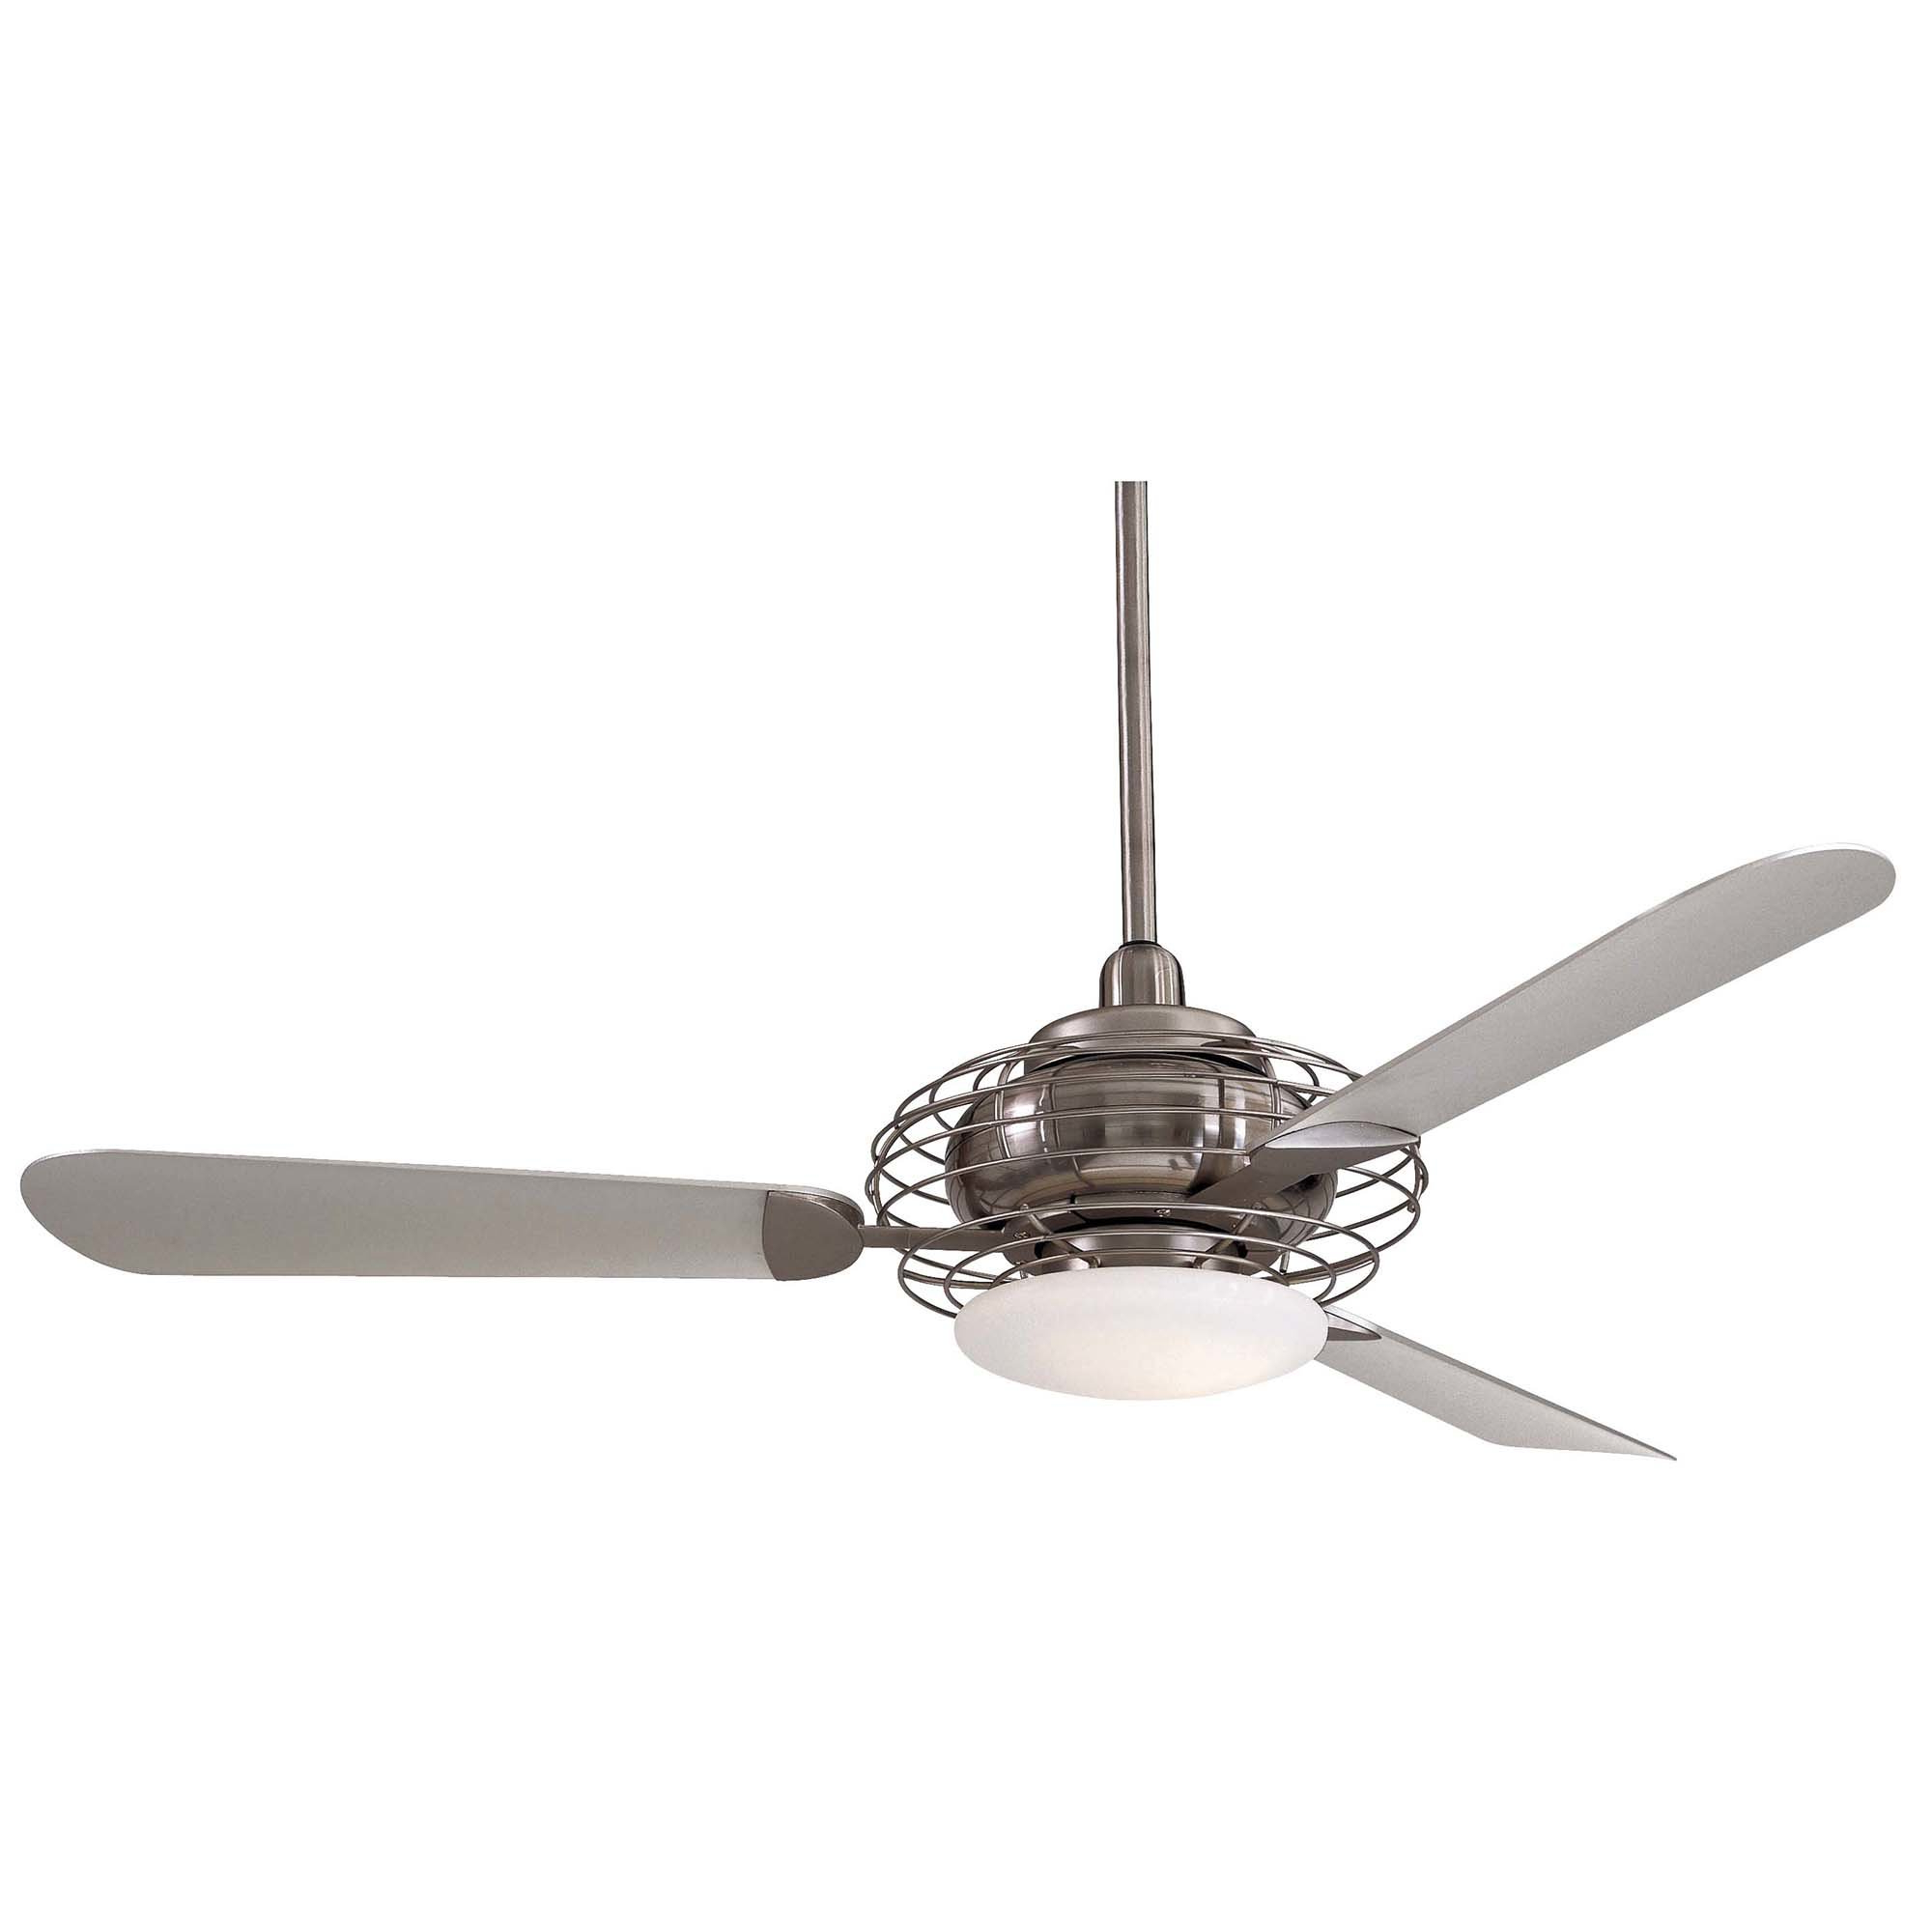 "2020 52"" Acero Retro 3 Blade Led Ceiling Fan In Acero Retro 3 Blade Led Ceiling Fans (View 2 of 20)"